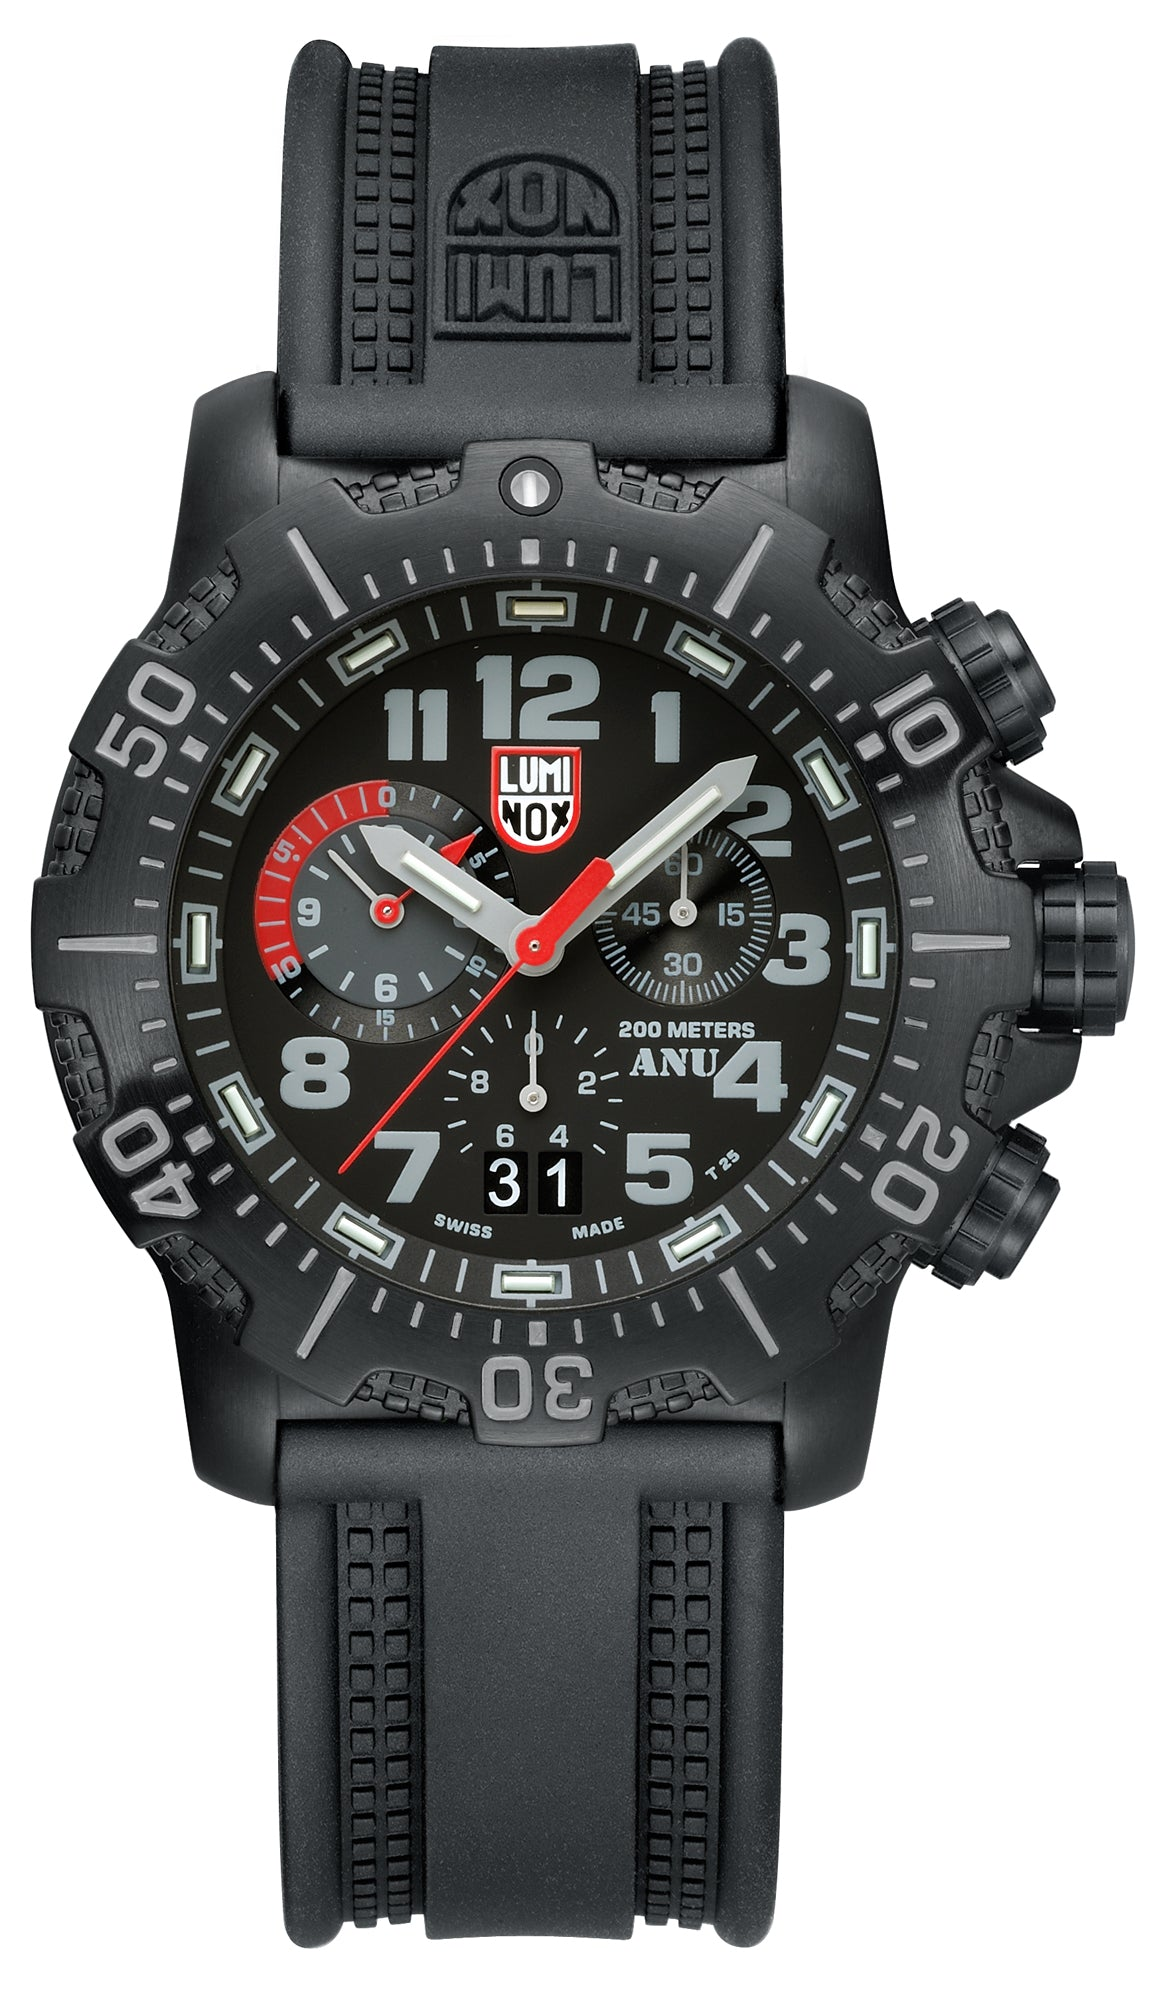 SD - ANU (Authorized for Navy Use) Chronograph 4241